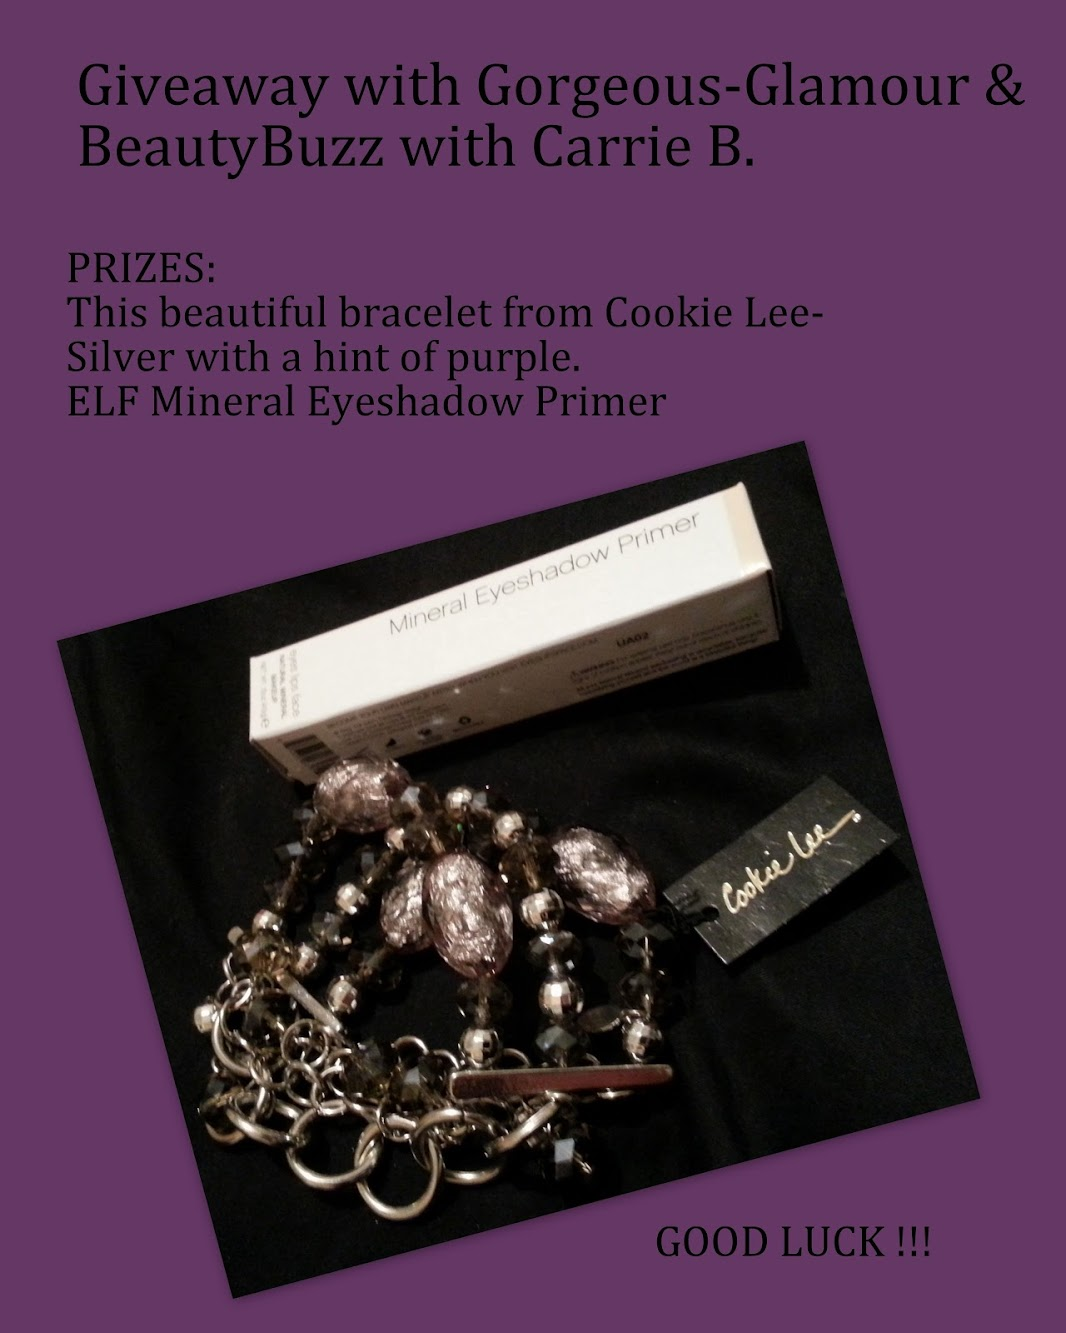 Giveaway with BeautyBuzz w/ Carrie B.